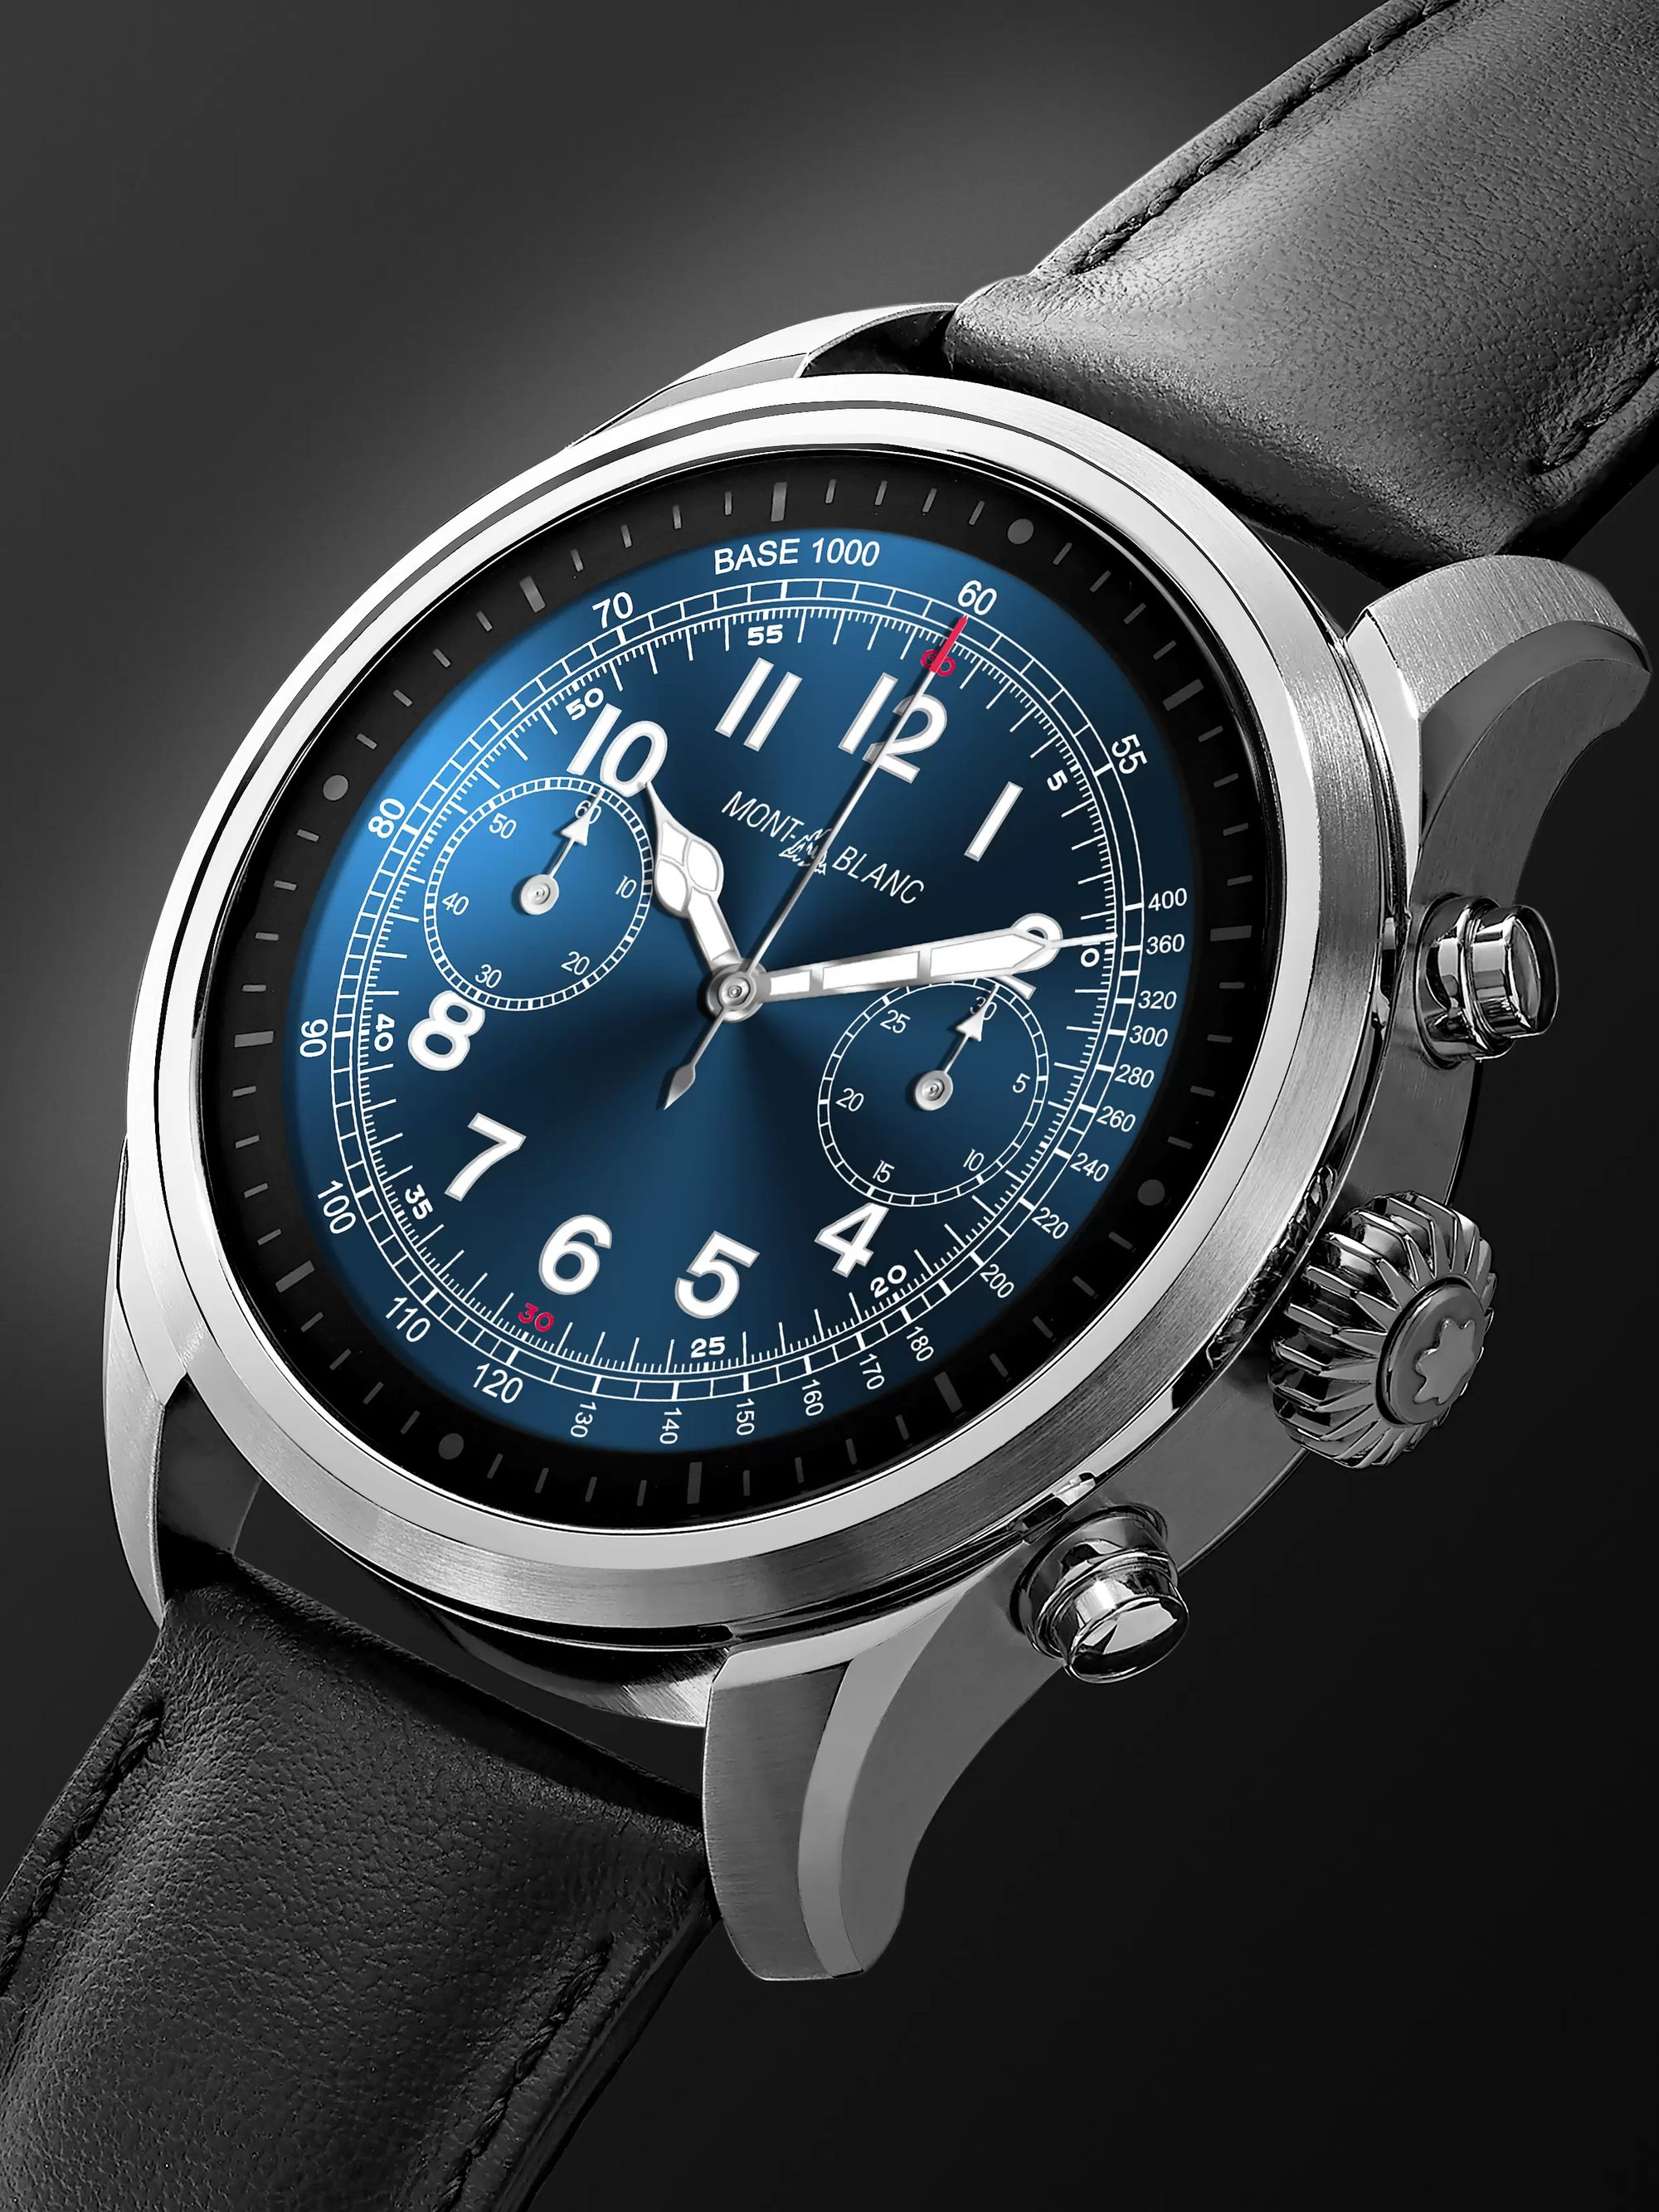 Montblanc Summit 2 42mm Stainless Steel and Leather Smart Watch, Ref. No. 119440